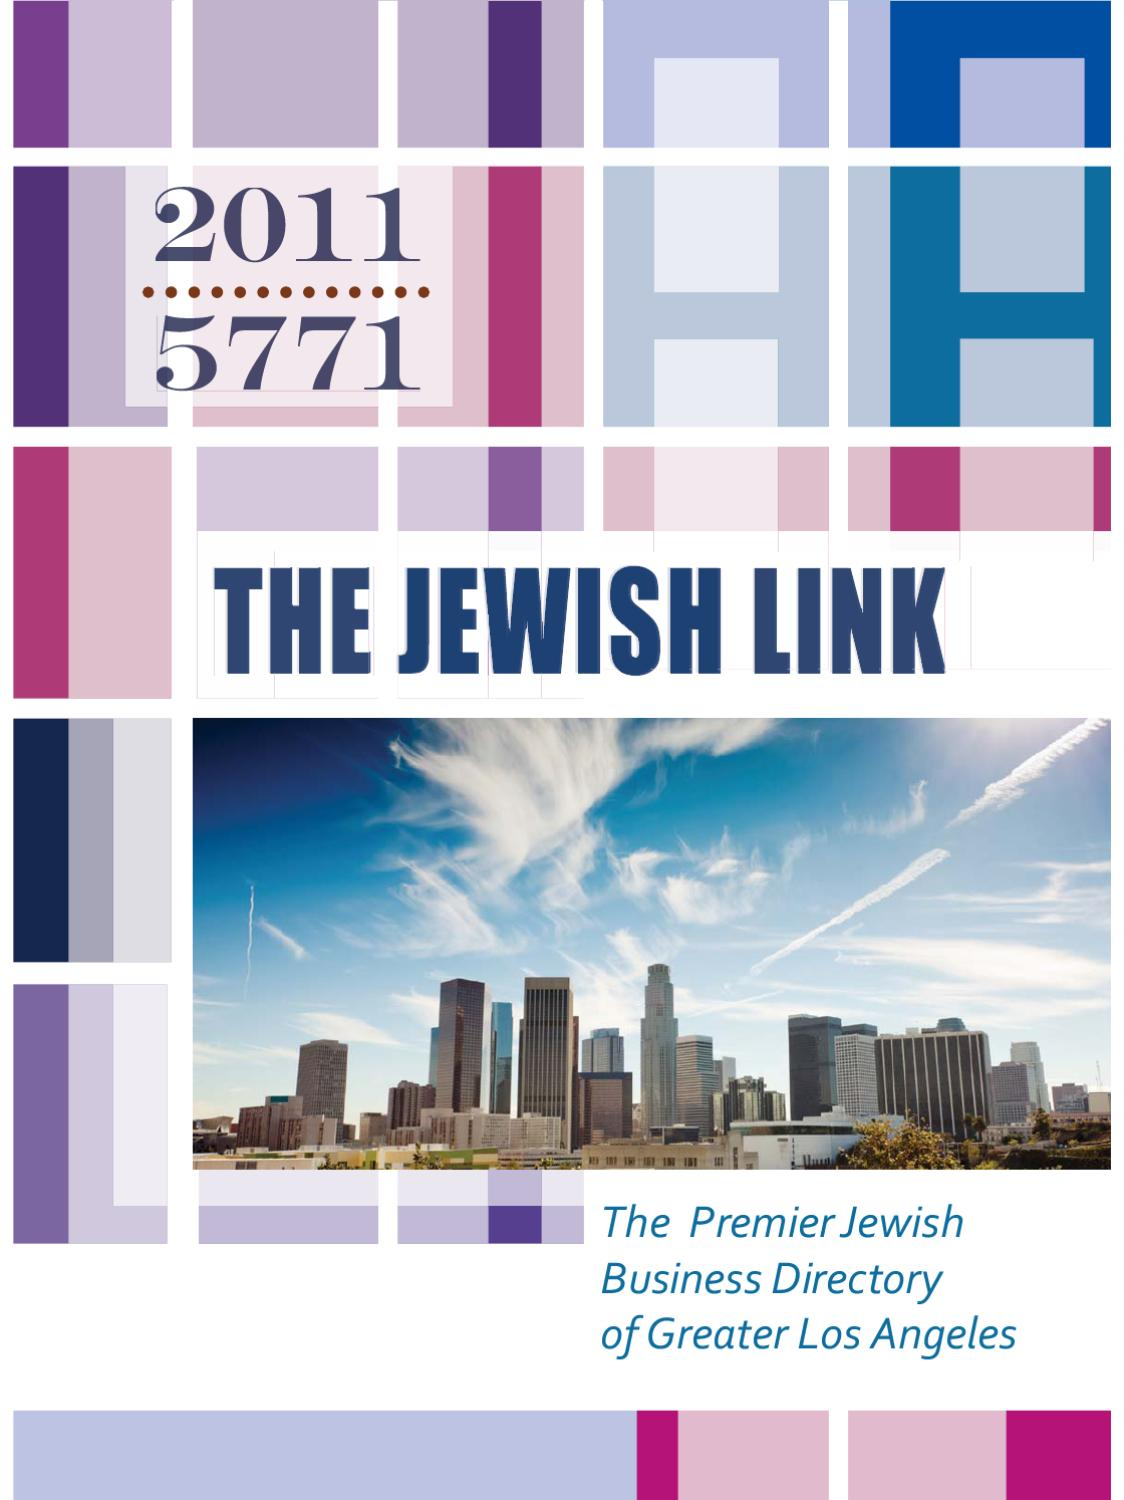 The Jewish Link Business Directory by The Jewish Link - issuu